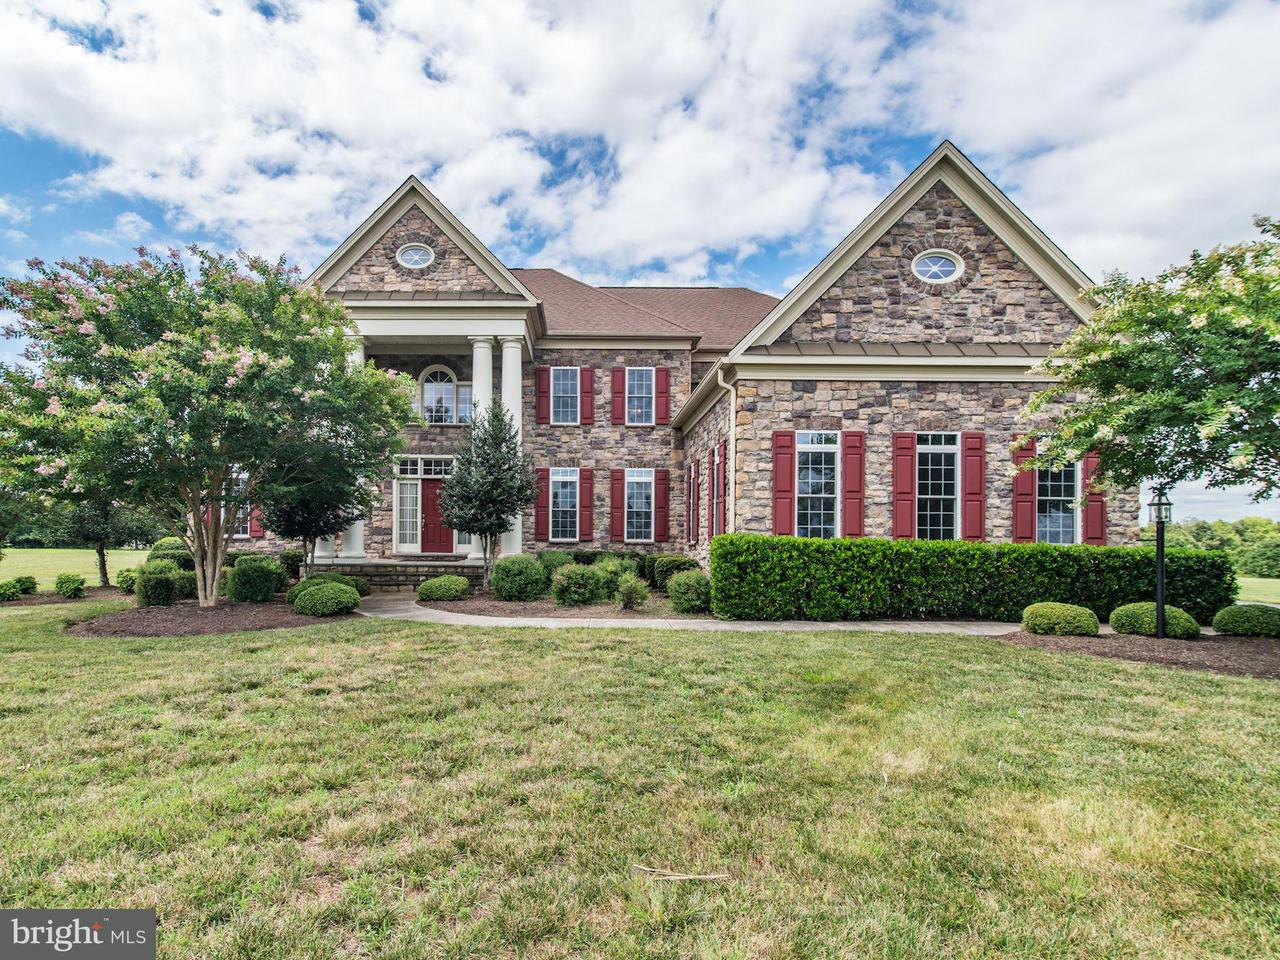 Single Family Home for Sale at 10921 MEADOW WALK Lane 10921 MEADOW WALK Lane Bristow, Virginia 20136 United States